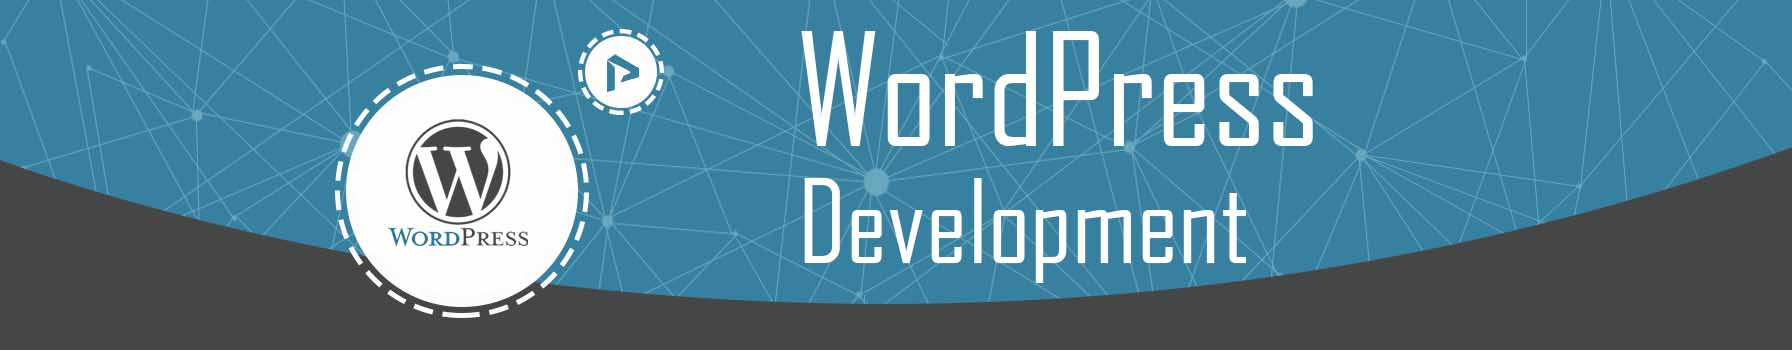 wordpress-development.jpg